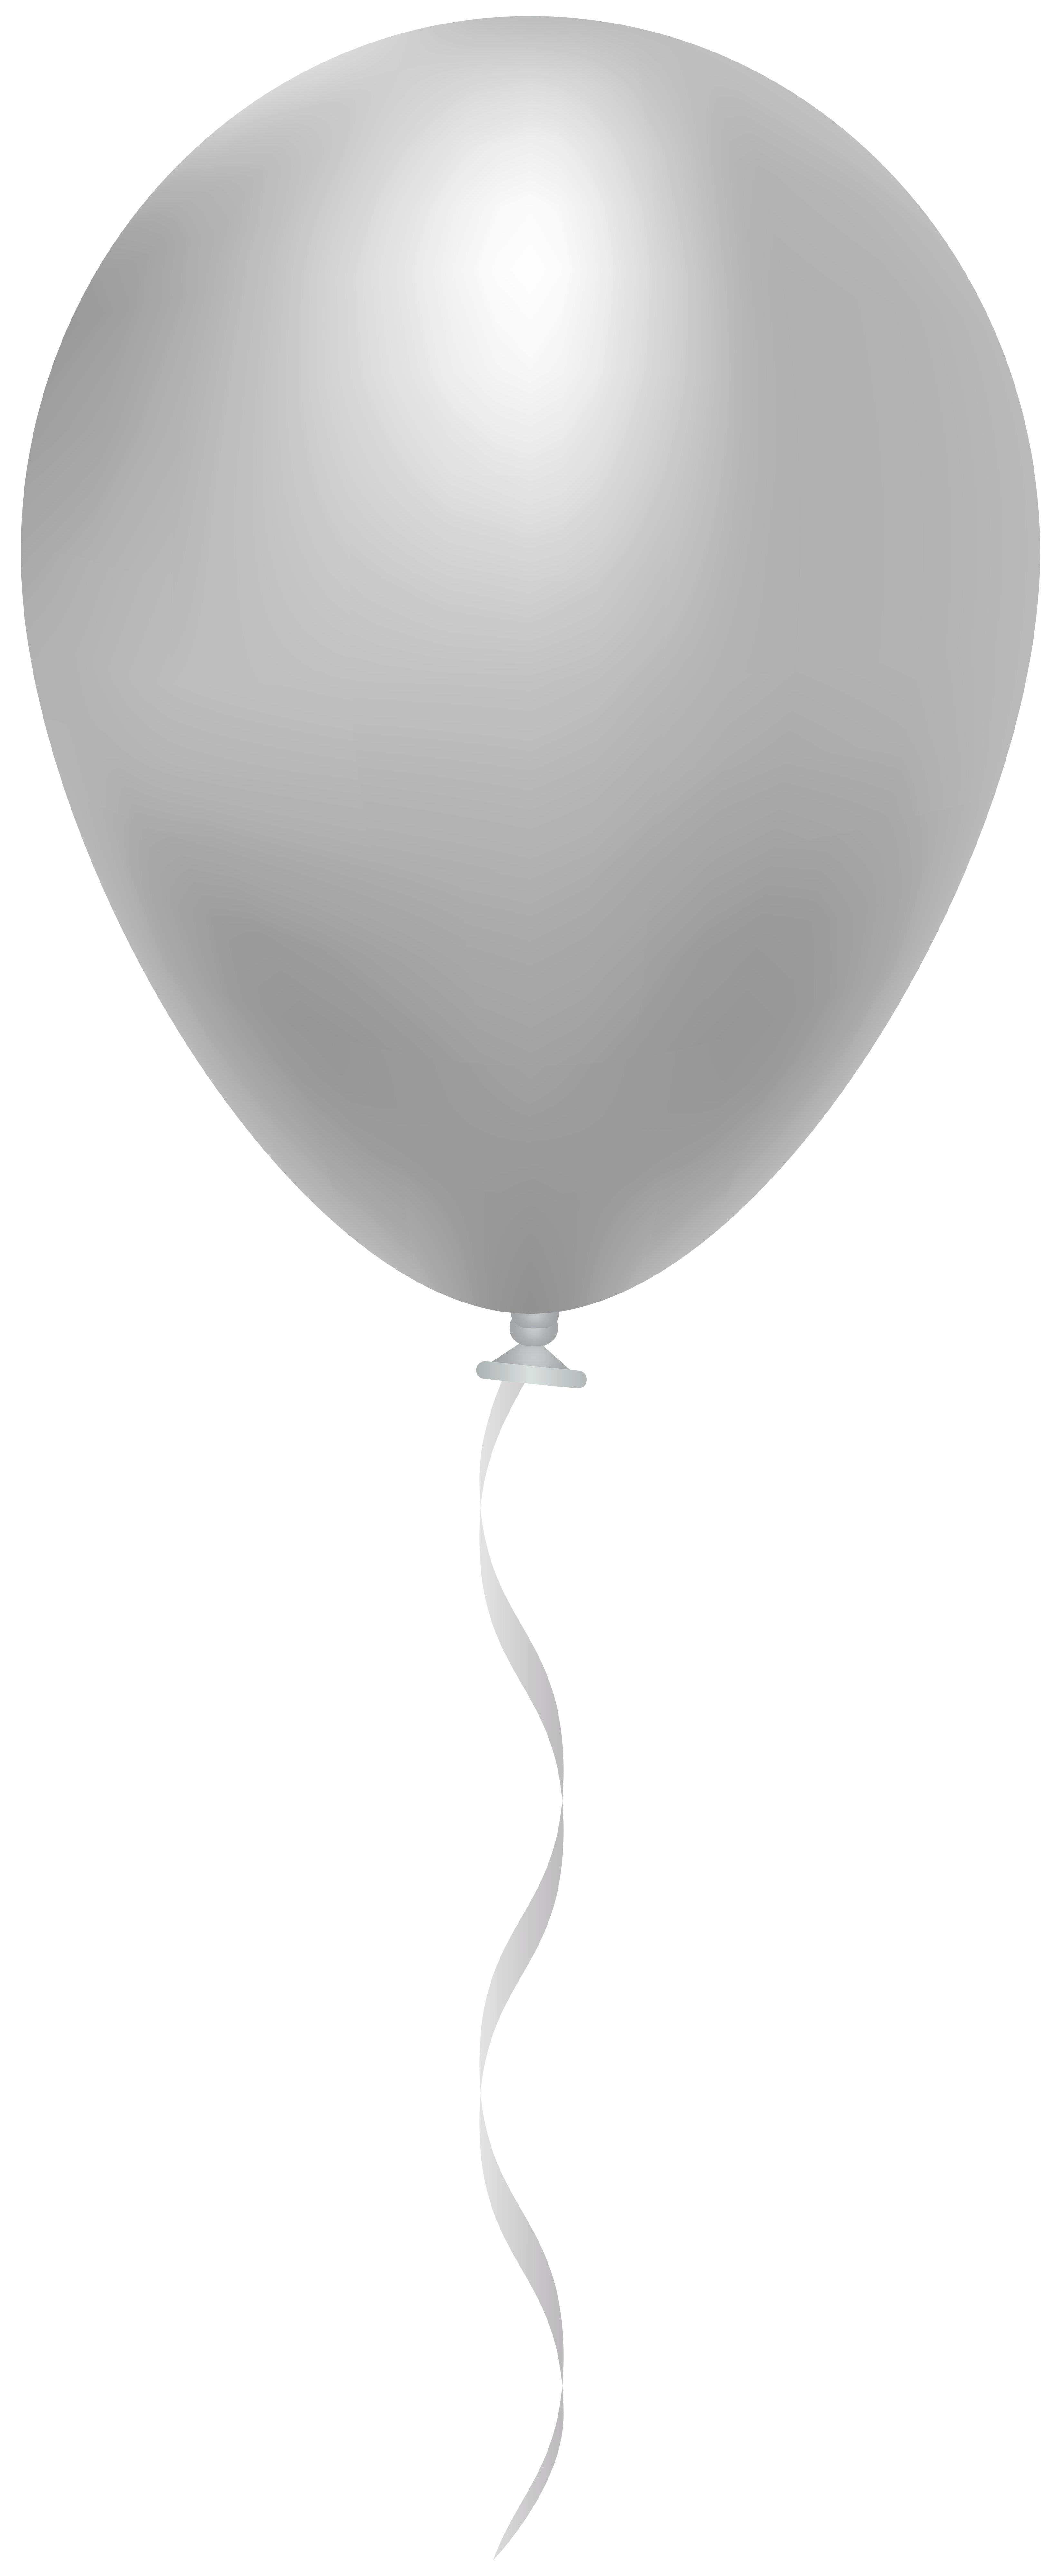 White balloon png. Clip art image gallery